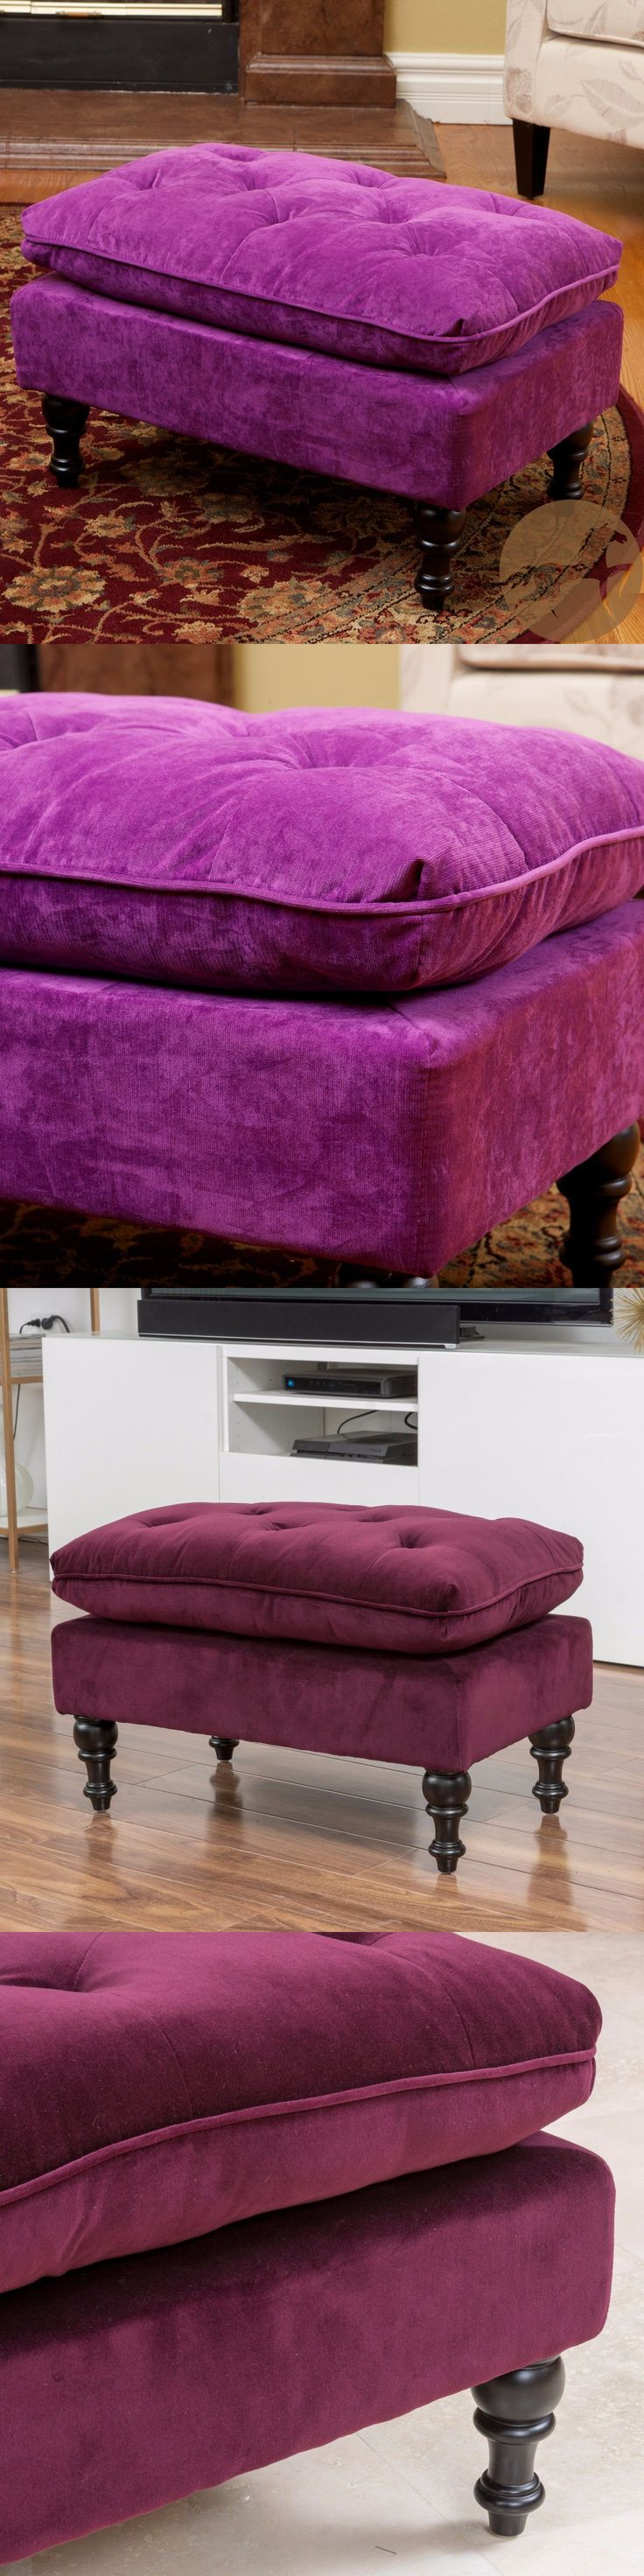 Ottomans Footstools and Poufs 20490: Chloe Diamond Tufted Pillow Top Fabric Ottoman -> BUY IT NOW ONLY: $84.99 on eBay!